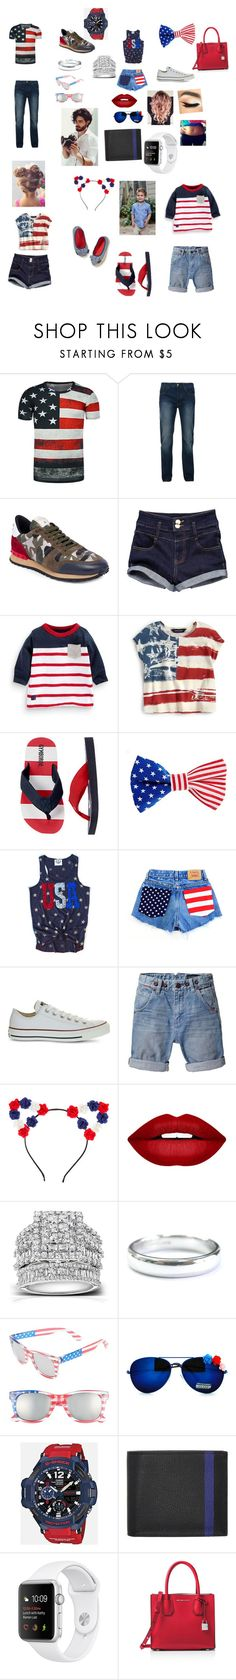 """""""Fourth of July"""" by miranda201518 ❤ liked on Polyvore featuring Bellfield, Valentino, Carter's, Ralph Lauren, ASOS, Converse, Scotch & Soda, Forever 21, Kobelli and Tiffany & Co."""